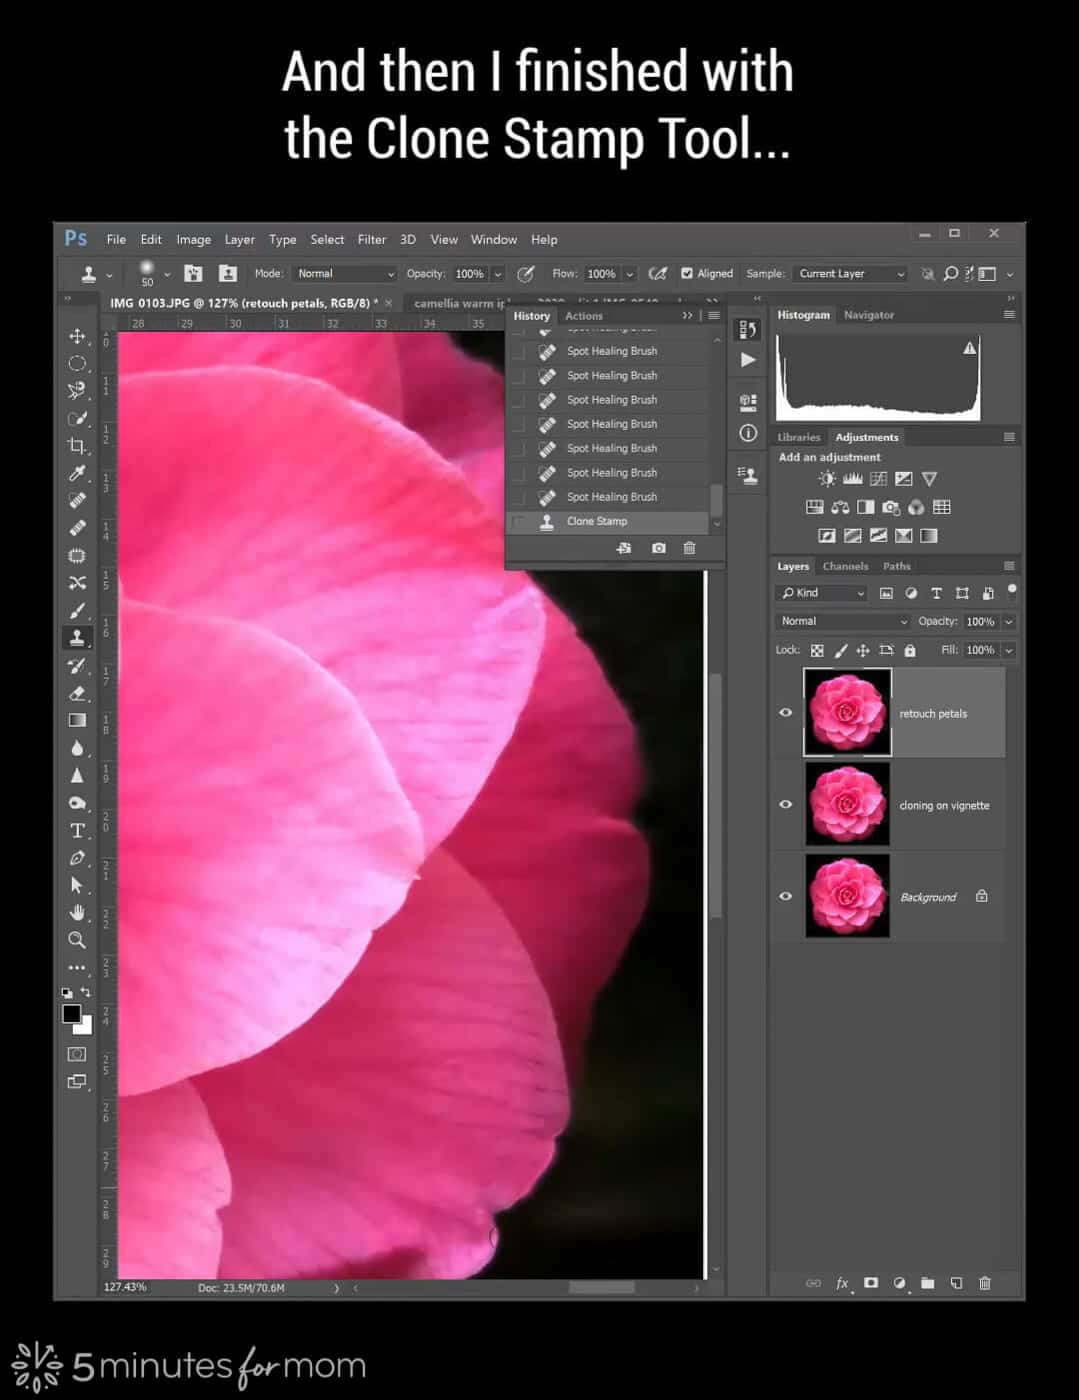 add a new layer for retouching petals in Photoshop